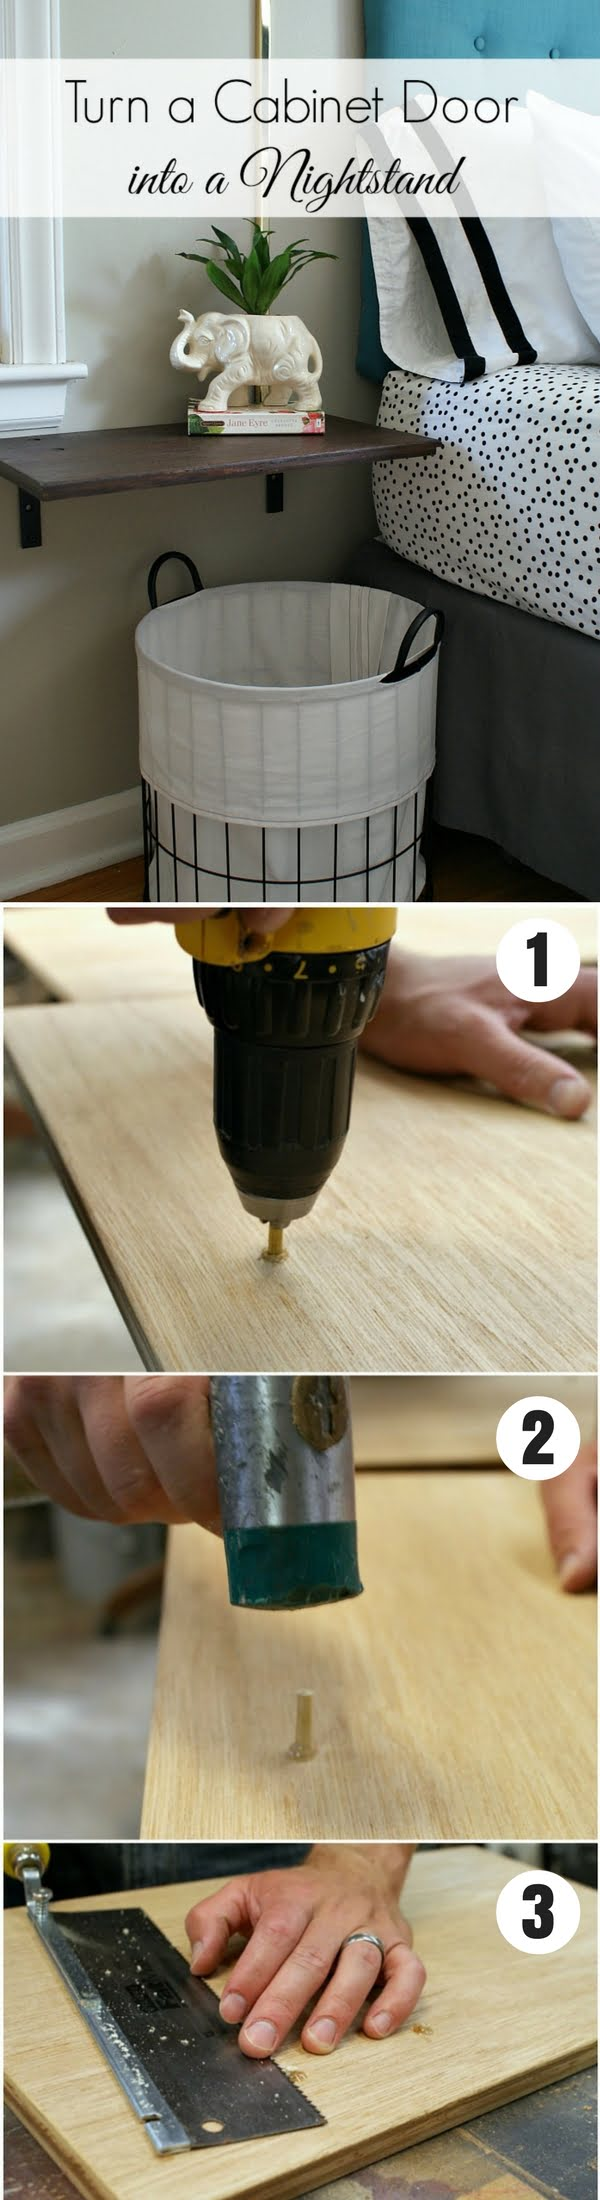 12 Easy DIY Nightstands That You Can Build on a Budget - Check out how to make this easy DIY floating nightstand from a cabinet door